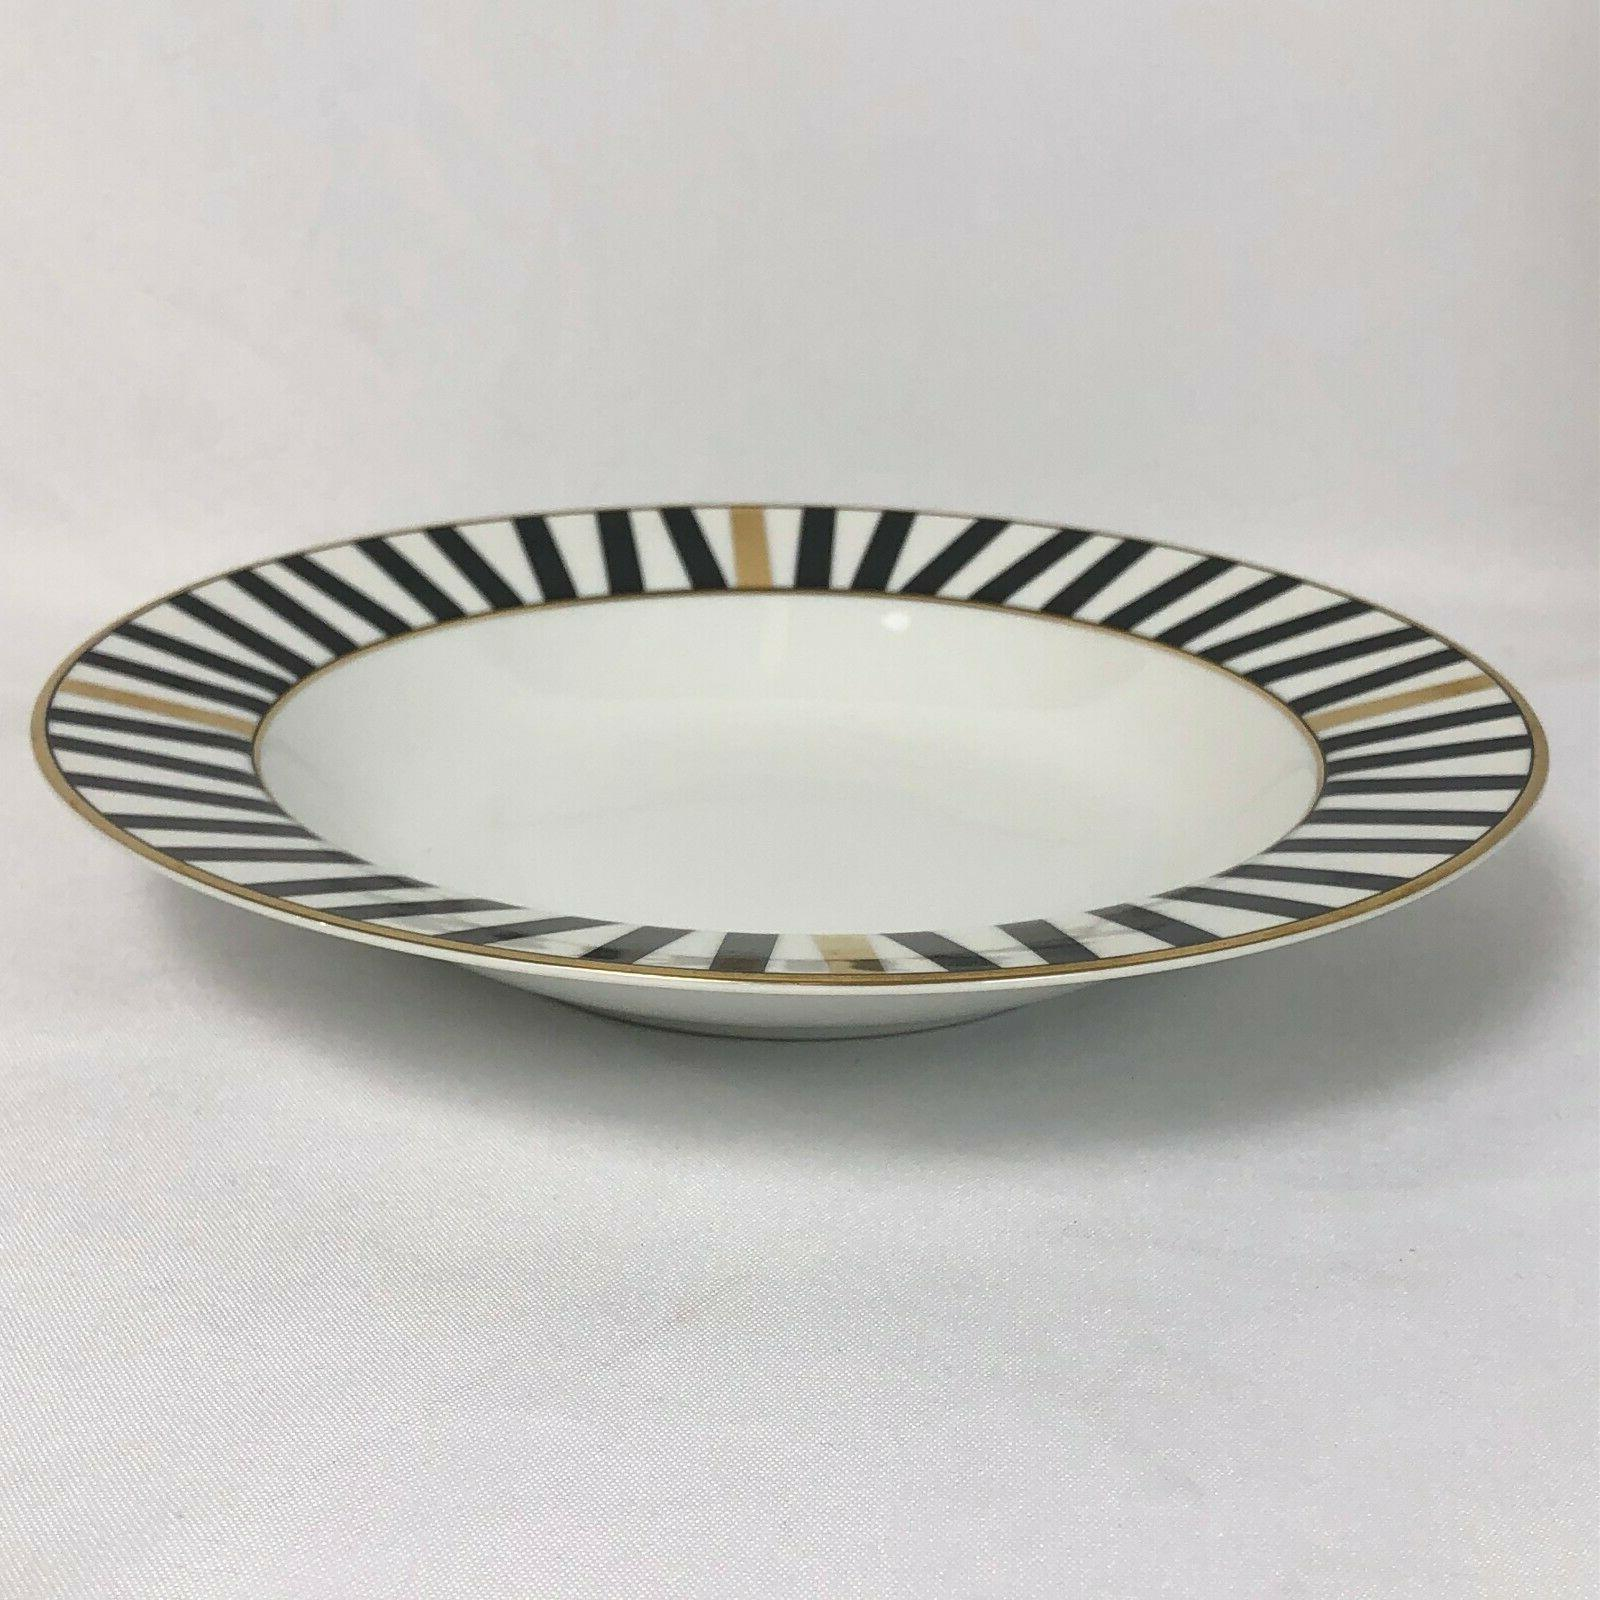 20 SET MIKASA MARQUEE 5 PC PLACE SETTINGS